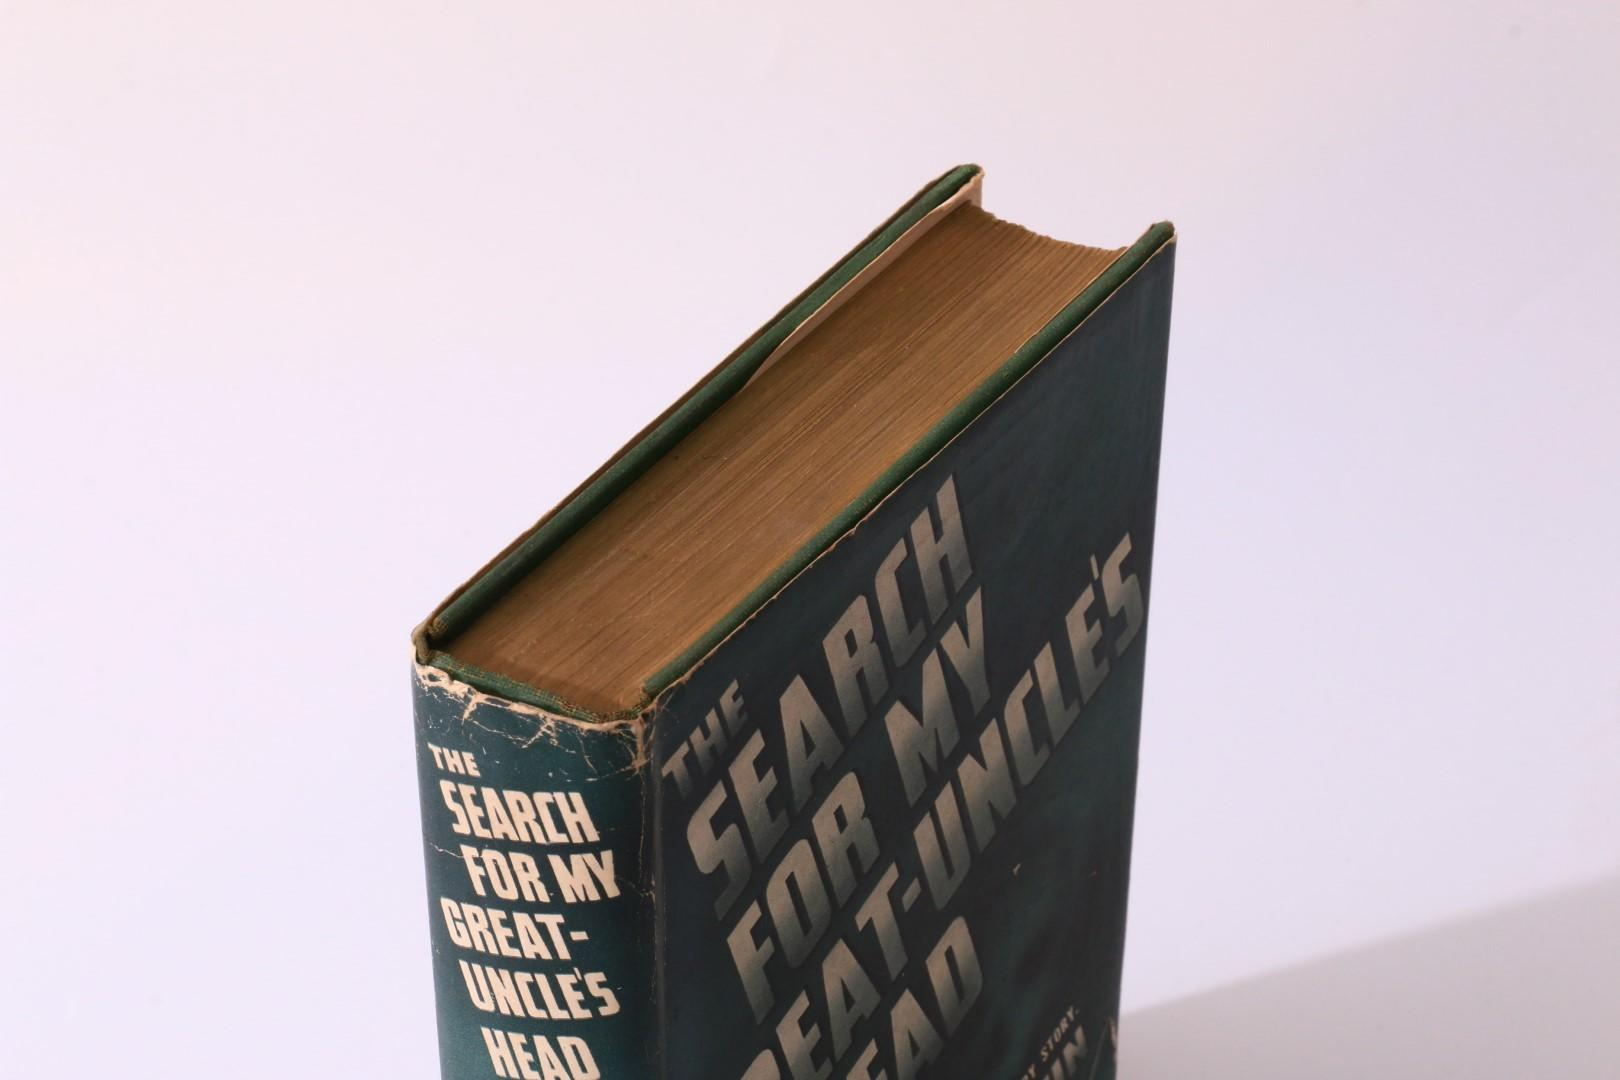 Peter Coffin [John Latimer] - The Search for my Great-Uncle's Head - Doubleday, Doran, 1937, First Edition.